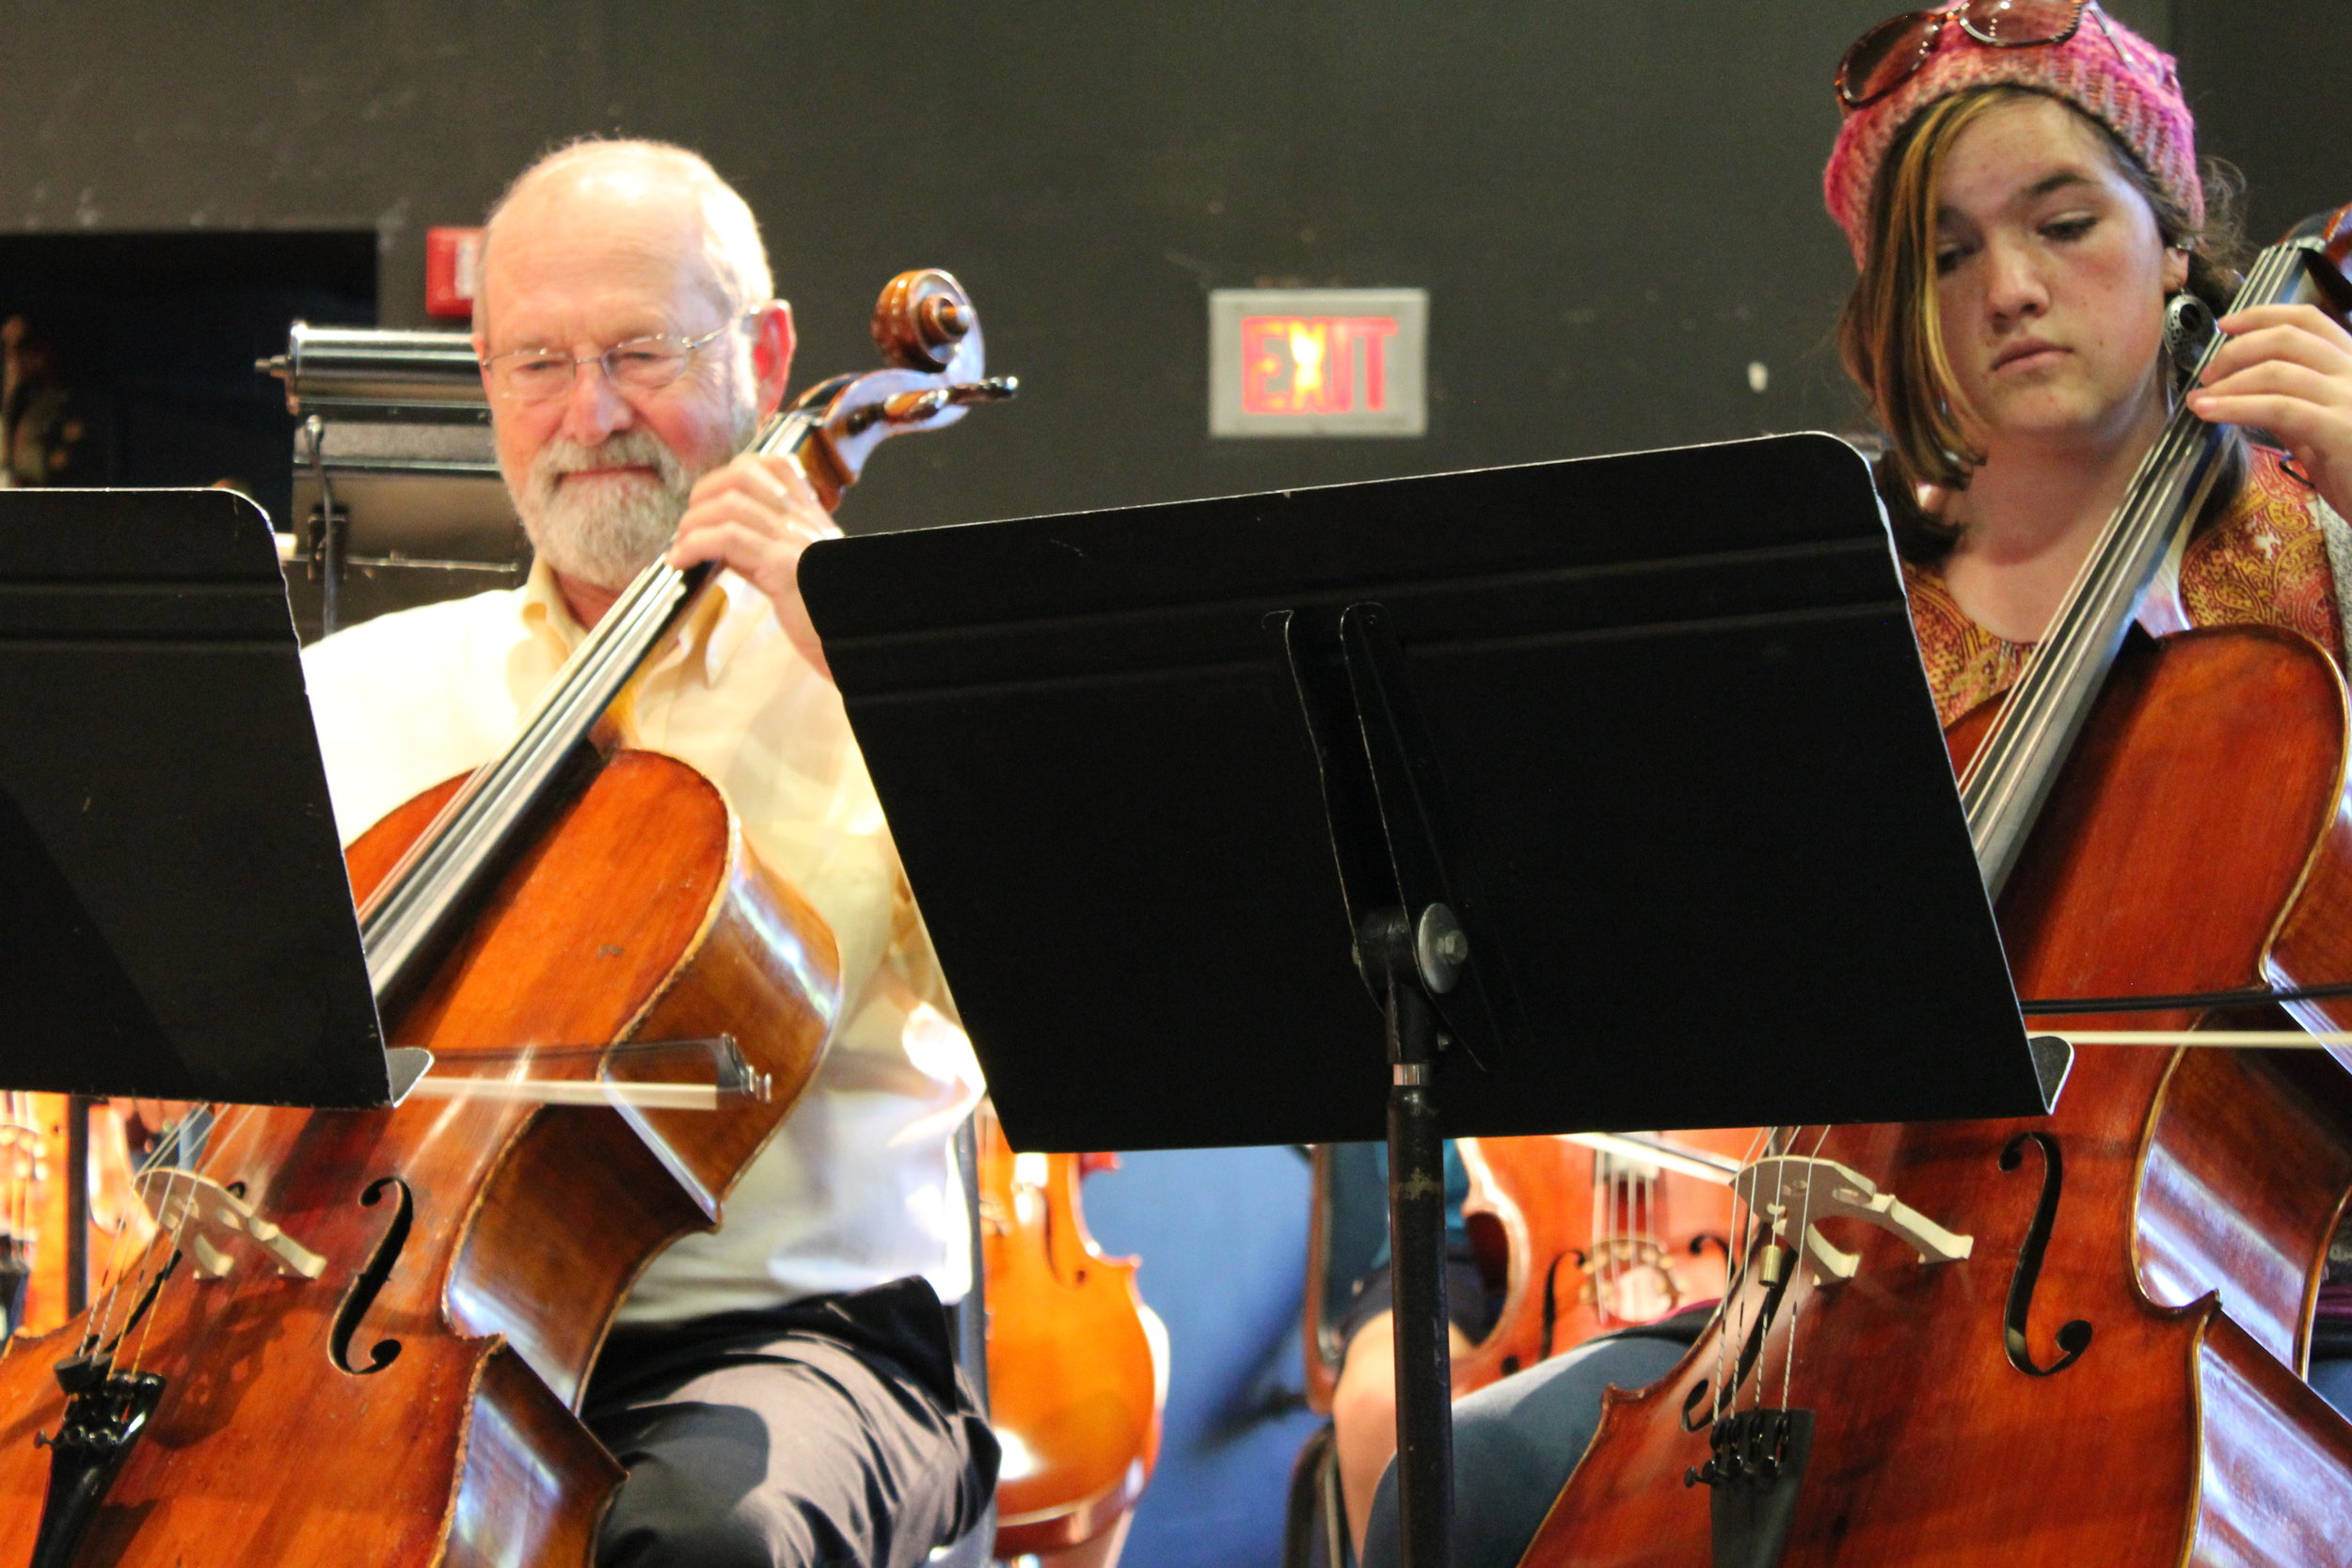 Our Mission - To inspire and enrich Central Vermont musicians and audiences of all ages through performances of new and traditional chamber orchestra repertory.Our members are dedicated volunteers who come together several times a year to provide engaging performances of both traditional and contemporary chamber orchestra repertory.Learn More